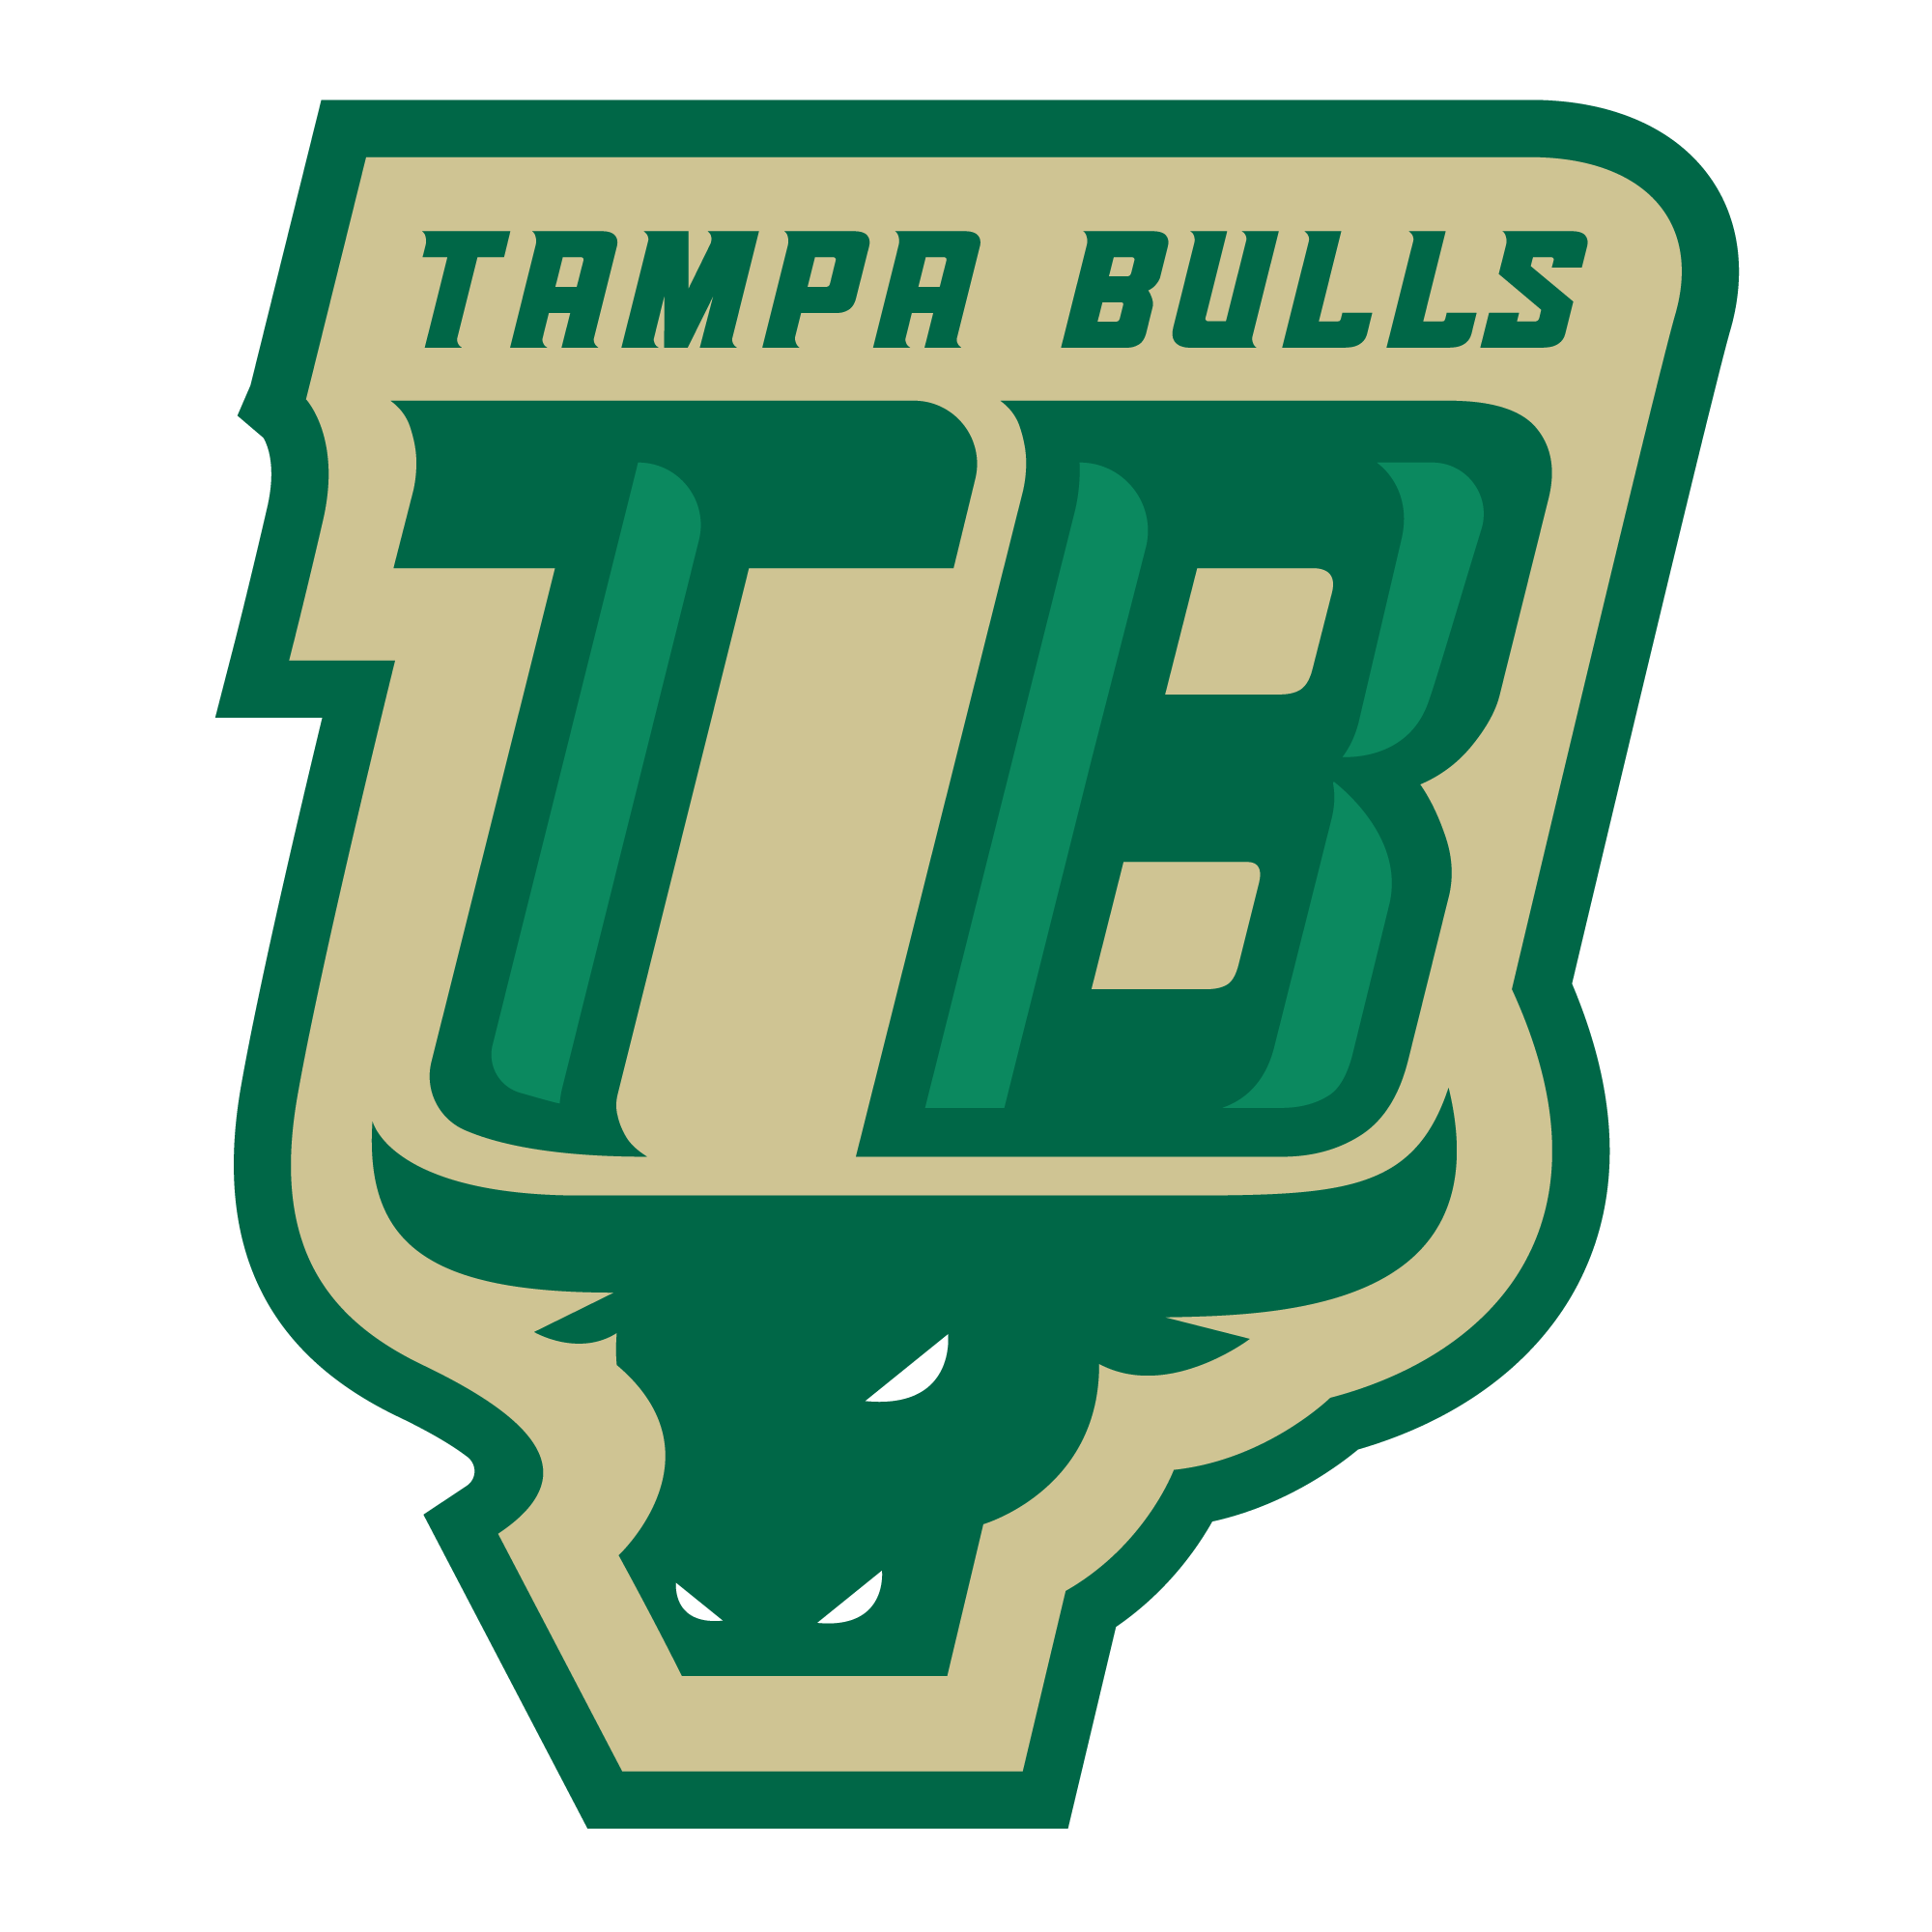 graphic transparent stock Bull clipart usf. Who are tampa bulls.